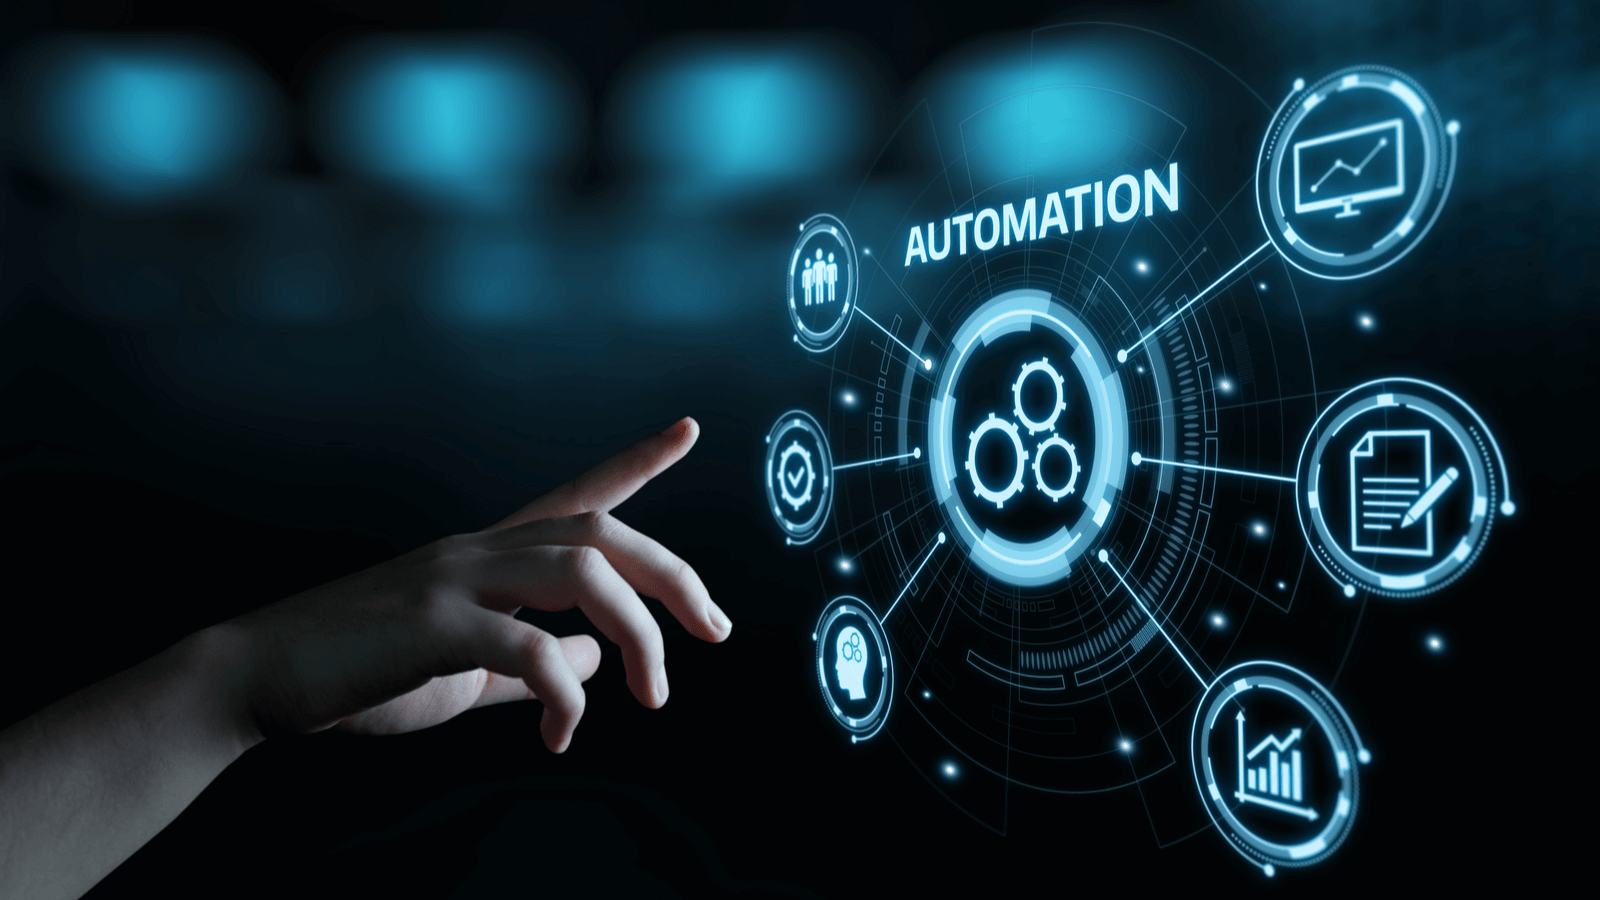 Berry Appleman & Leiden Transforms Immigration Automation with UiPath and Accelirate